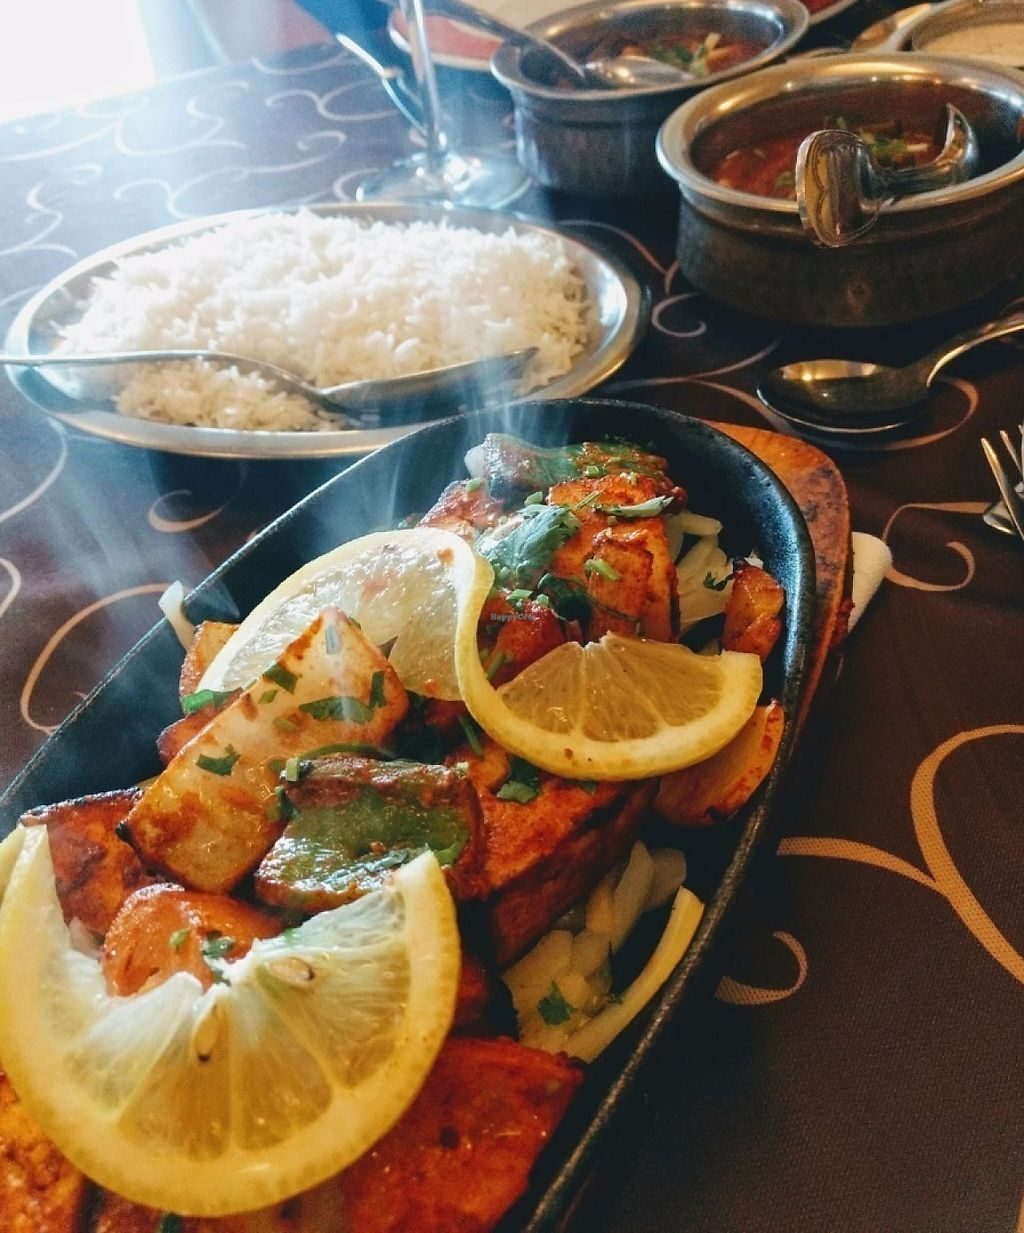 """Photo of Sabor da India  by <a href=""""/members/profile/Milla_P"""">Milla_P</a> <br/>Vegetarian tandoor, yammy! <br/> June 5, 2017  - <a href='/contact/abuse/image/45854/266127'>Report</a>"""